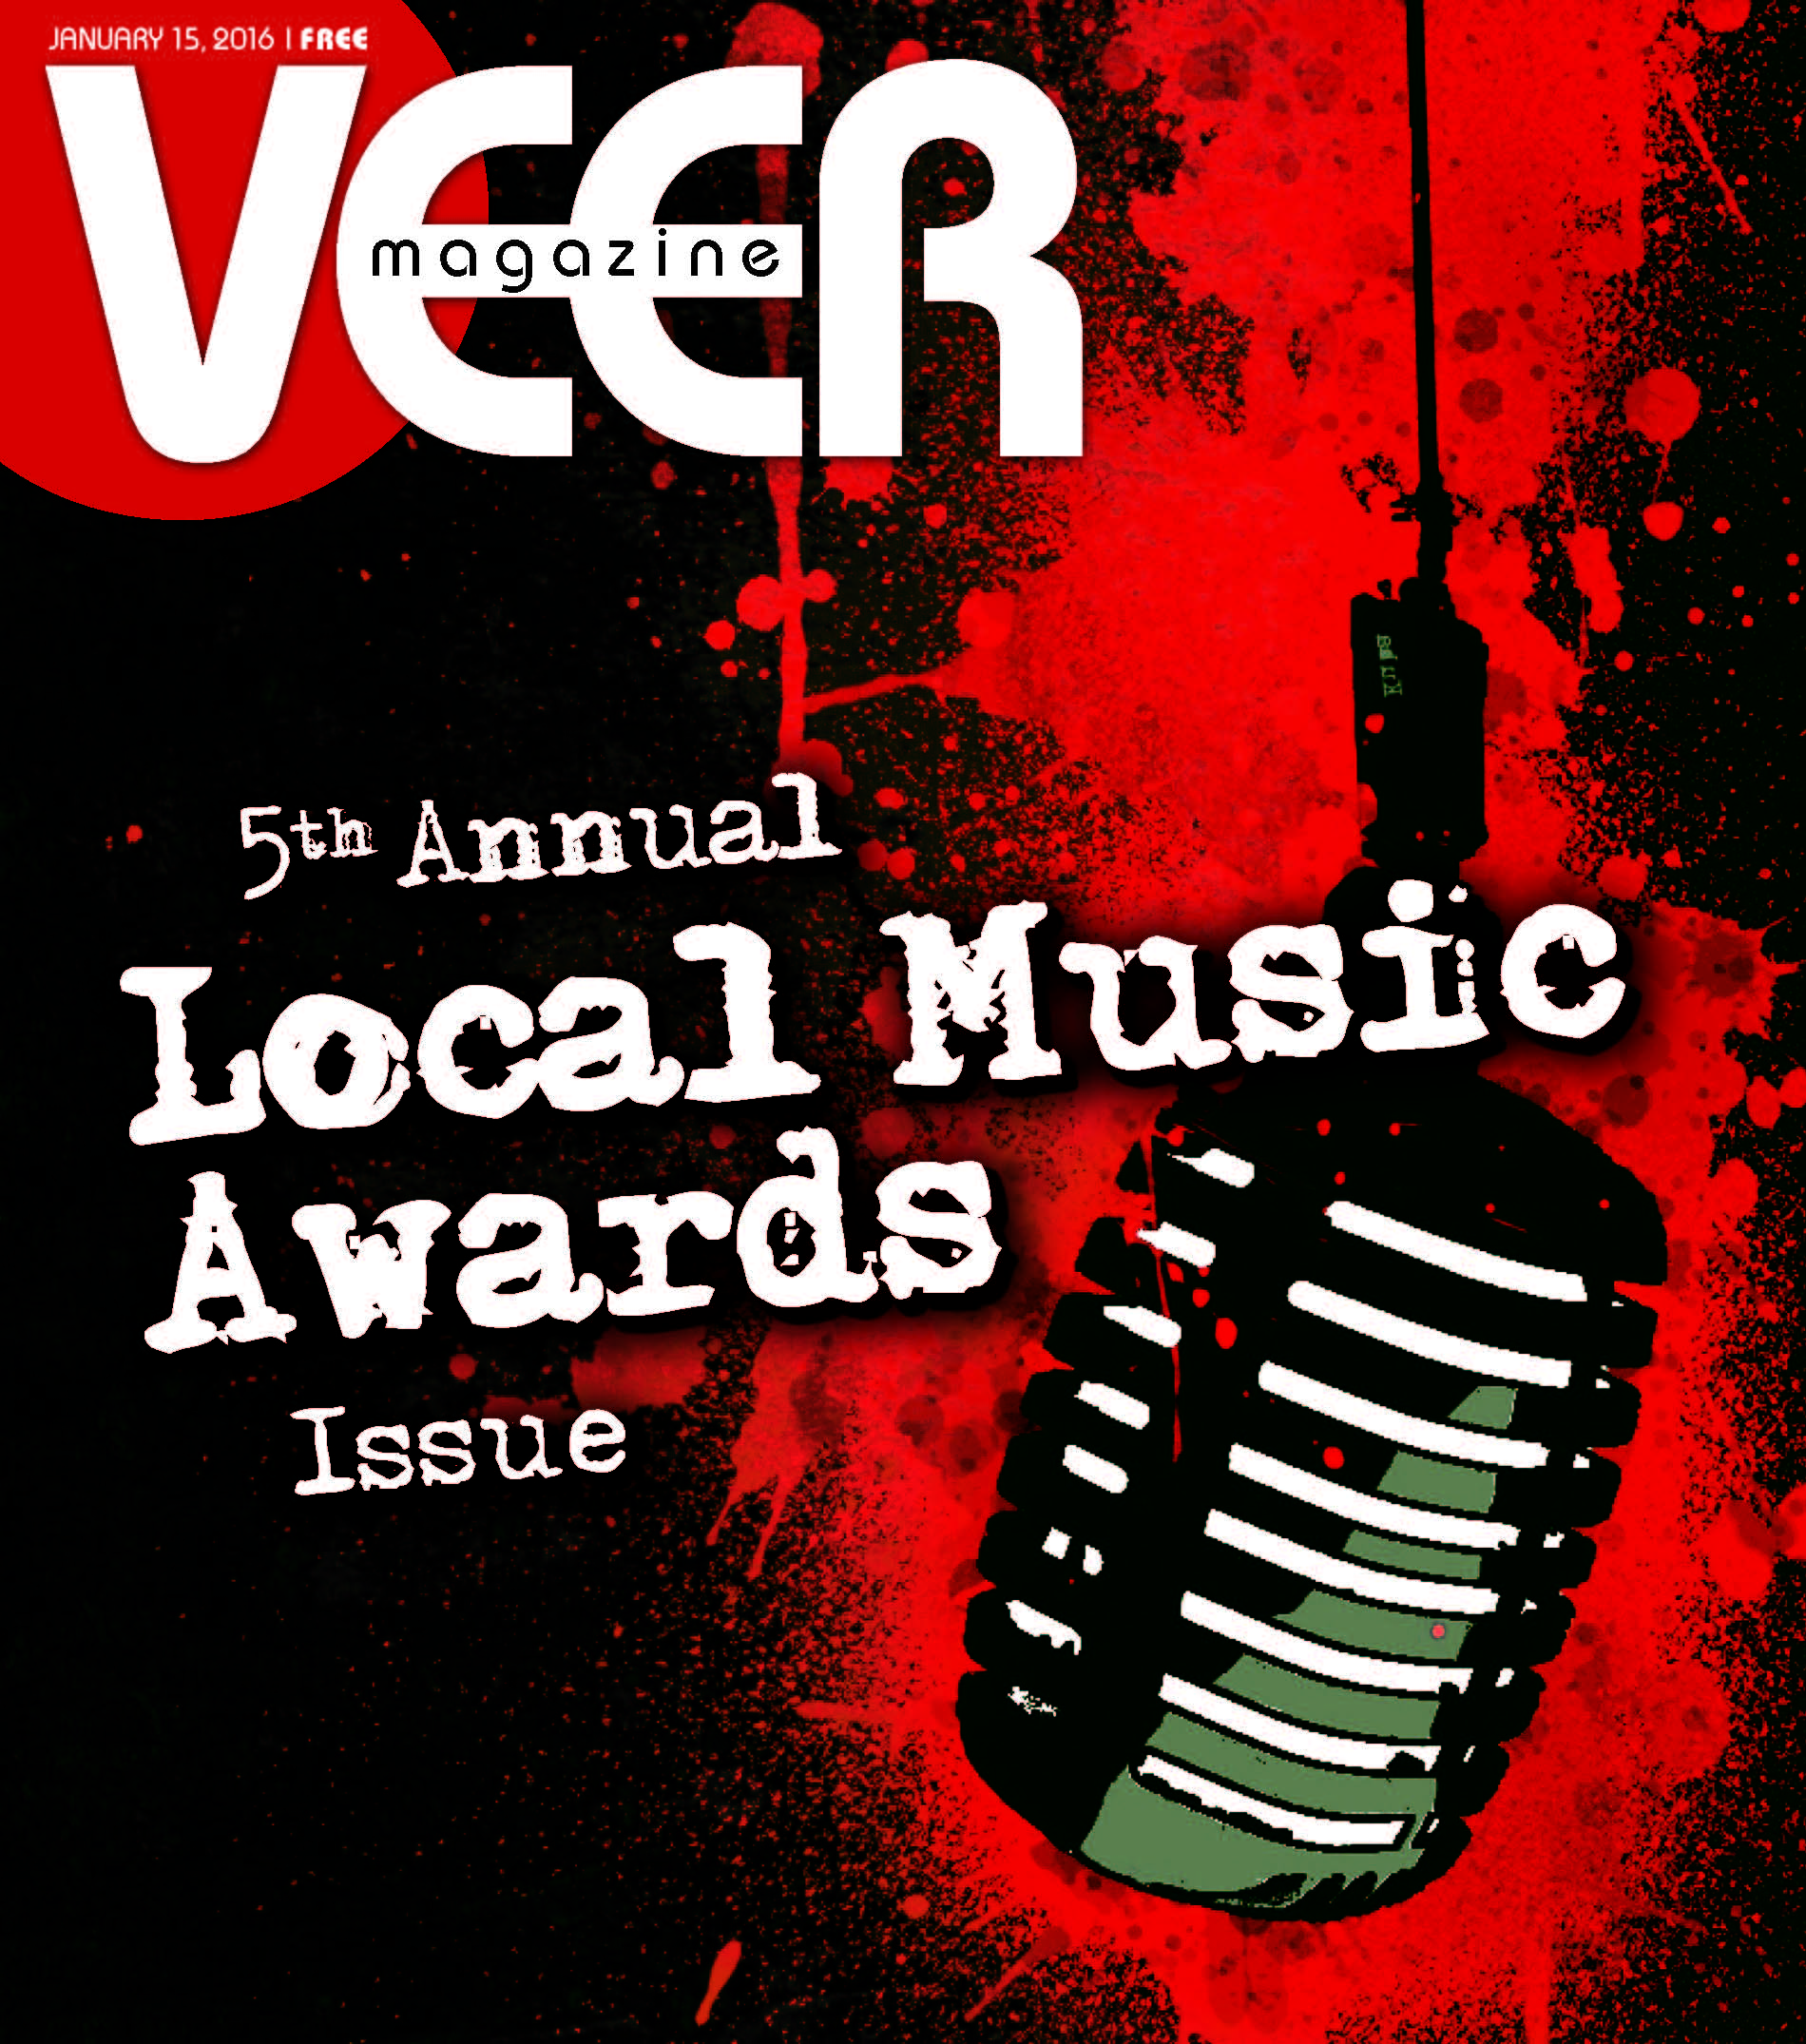 5th Annual Veer Music Awards Results